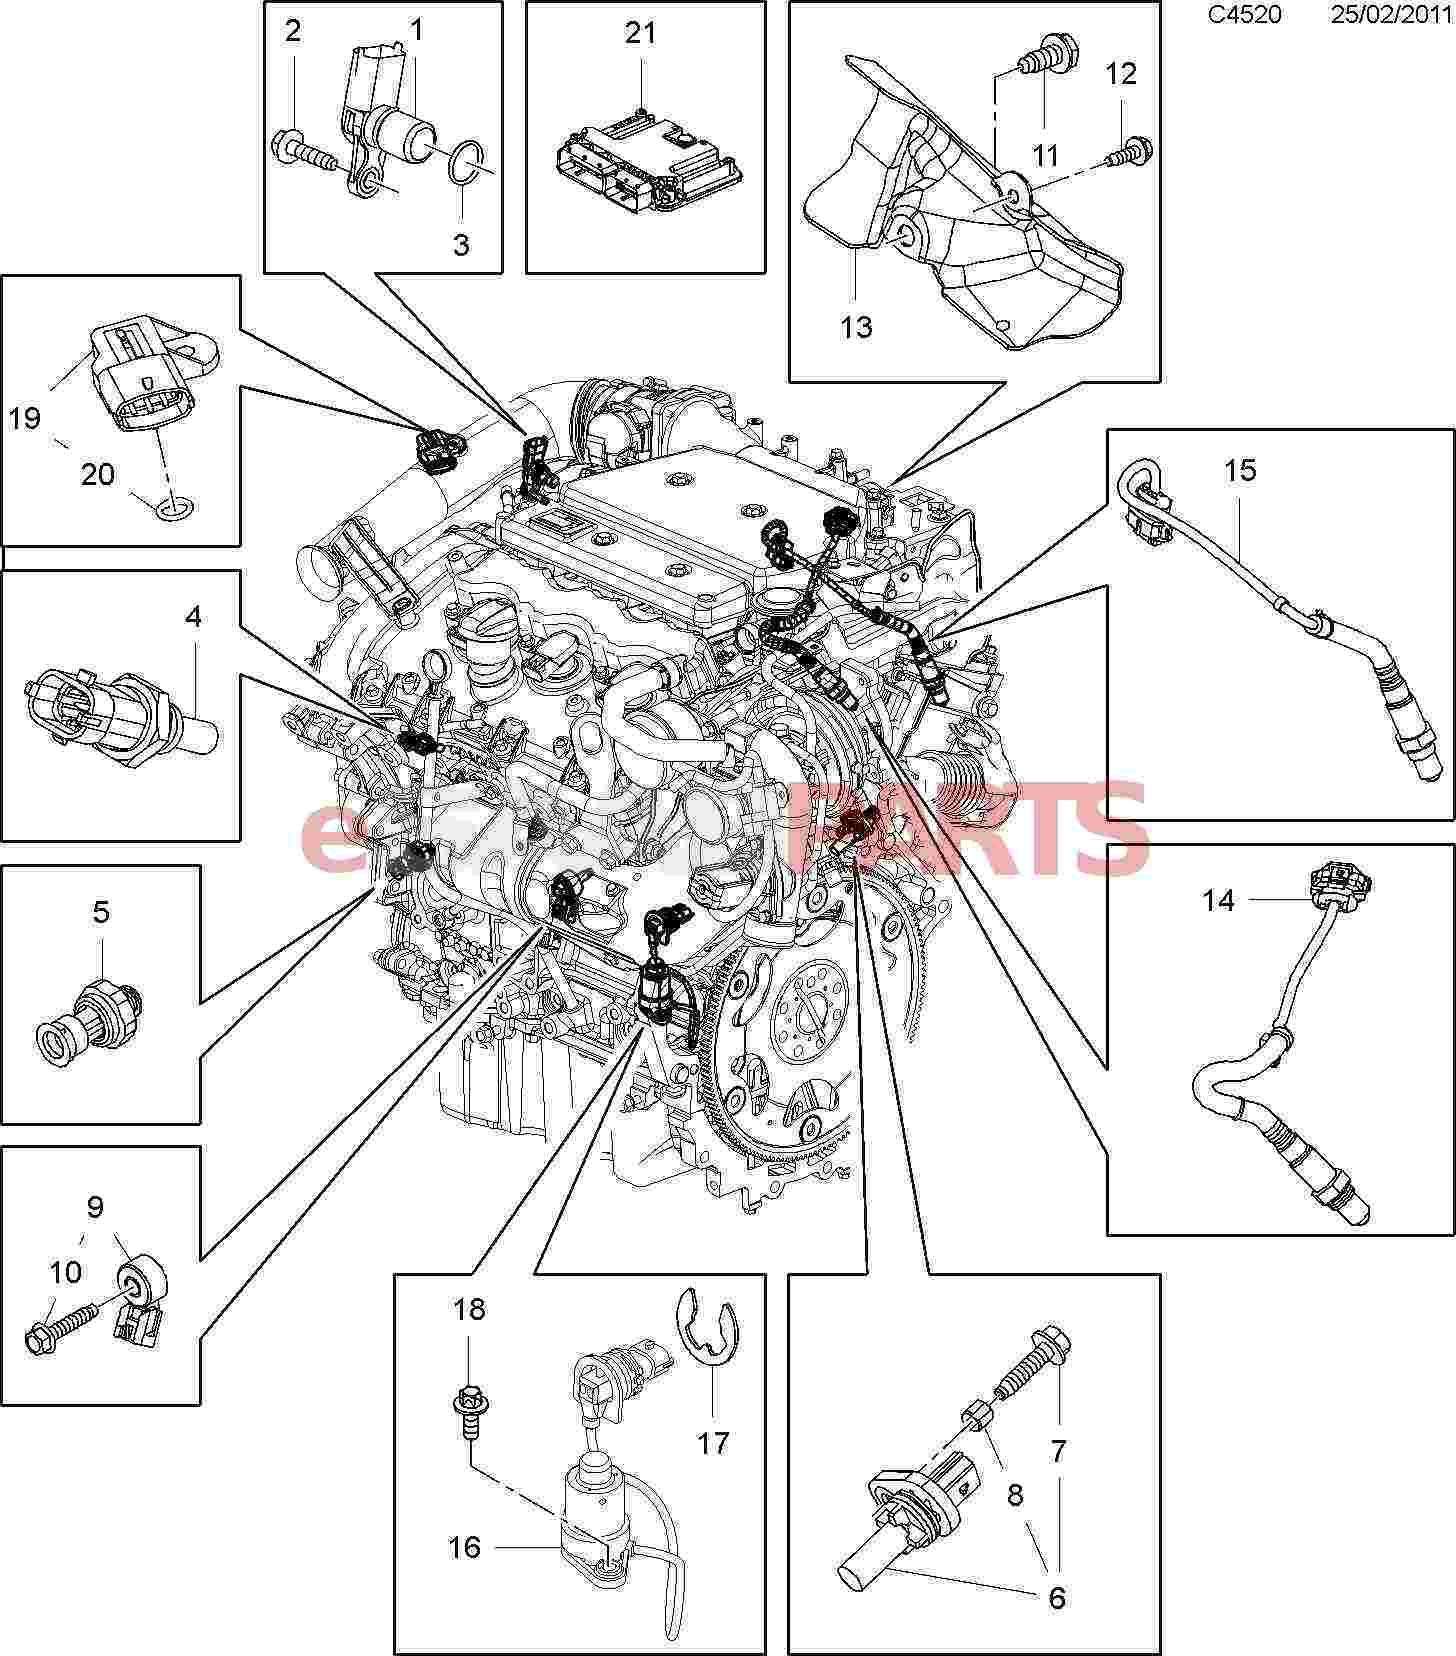 Ej205 Engine Diagram EJ25 Engine Diagram Wiring Diagram